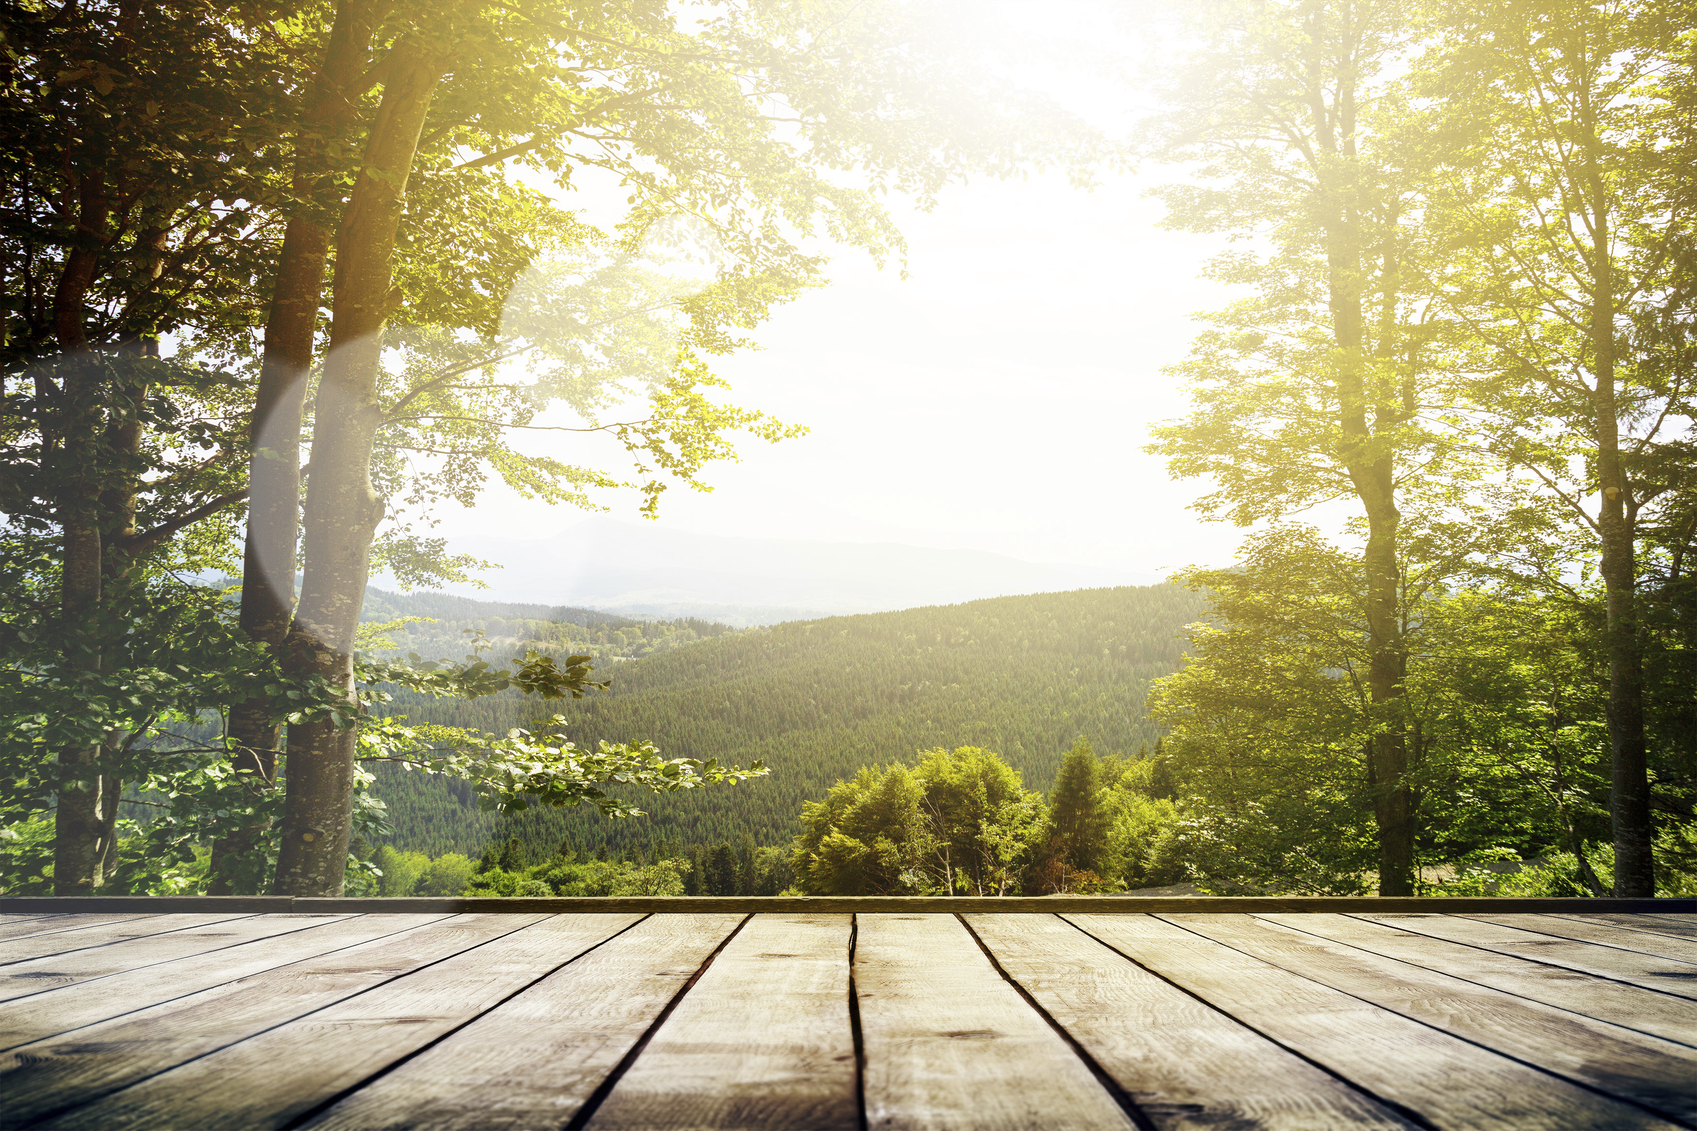 A scenic overlook view from a deck at Bliss Farm and Retreat